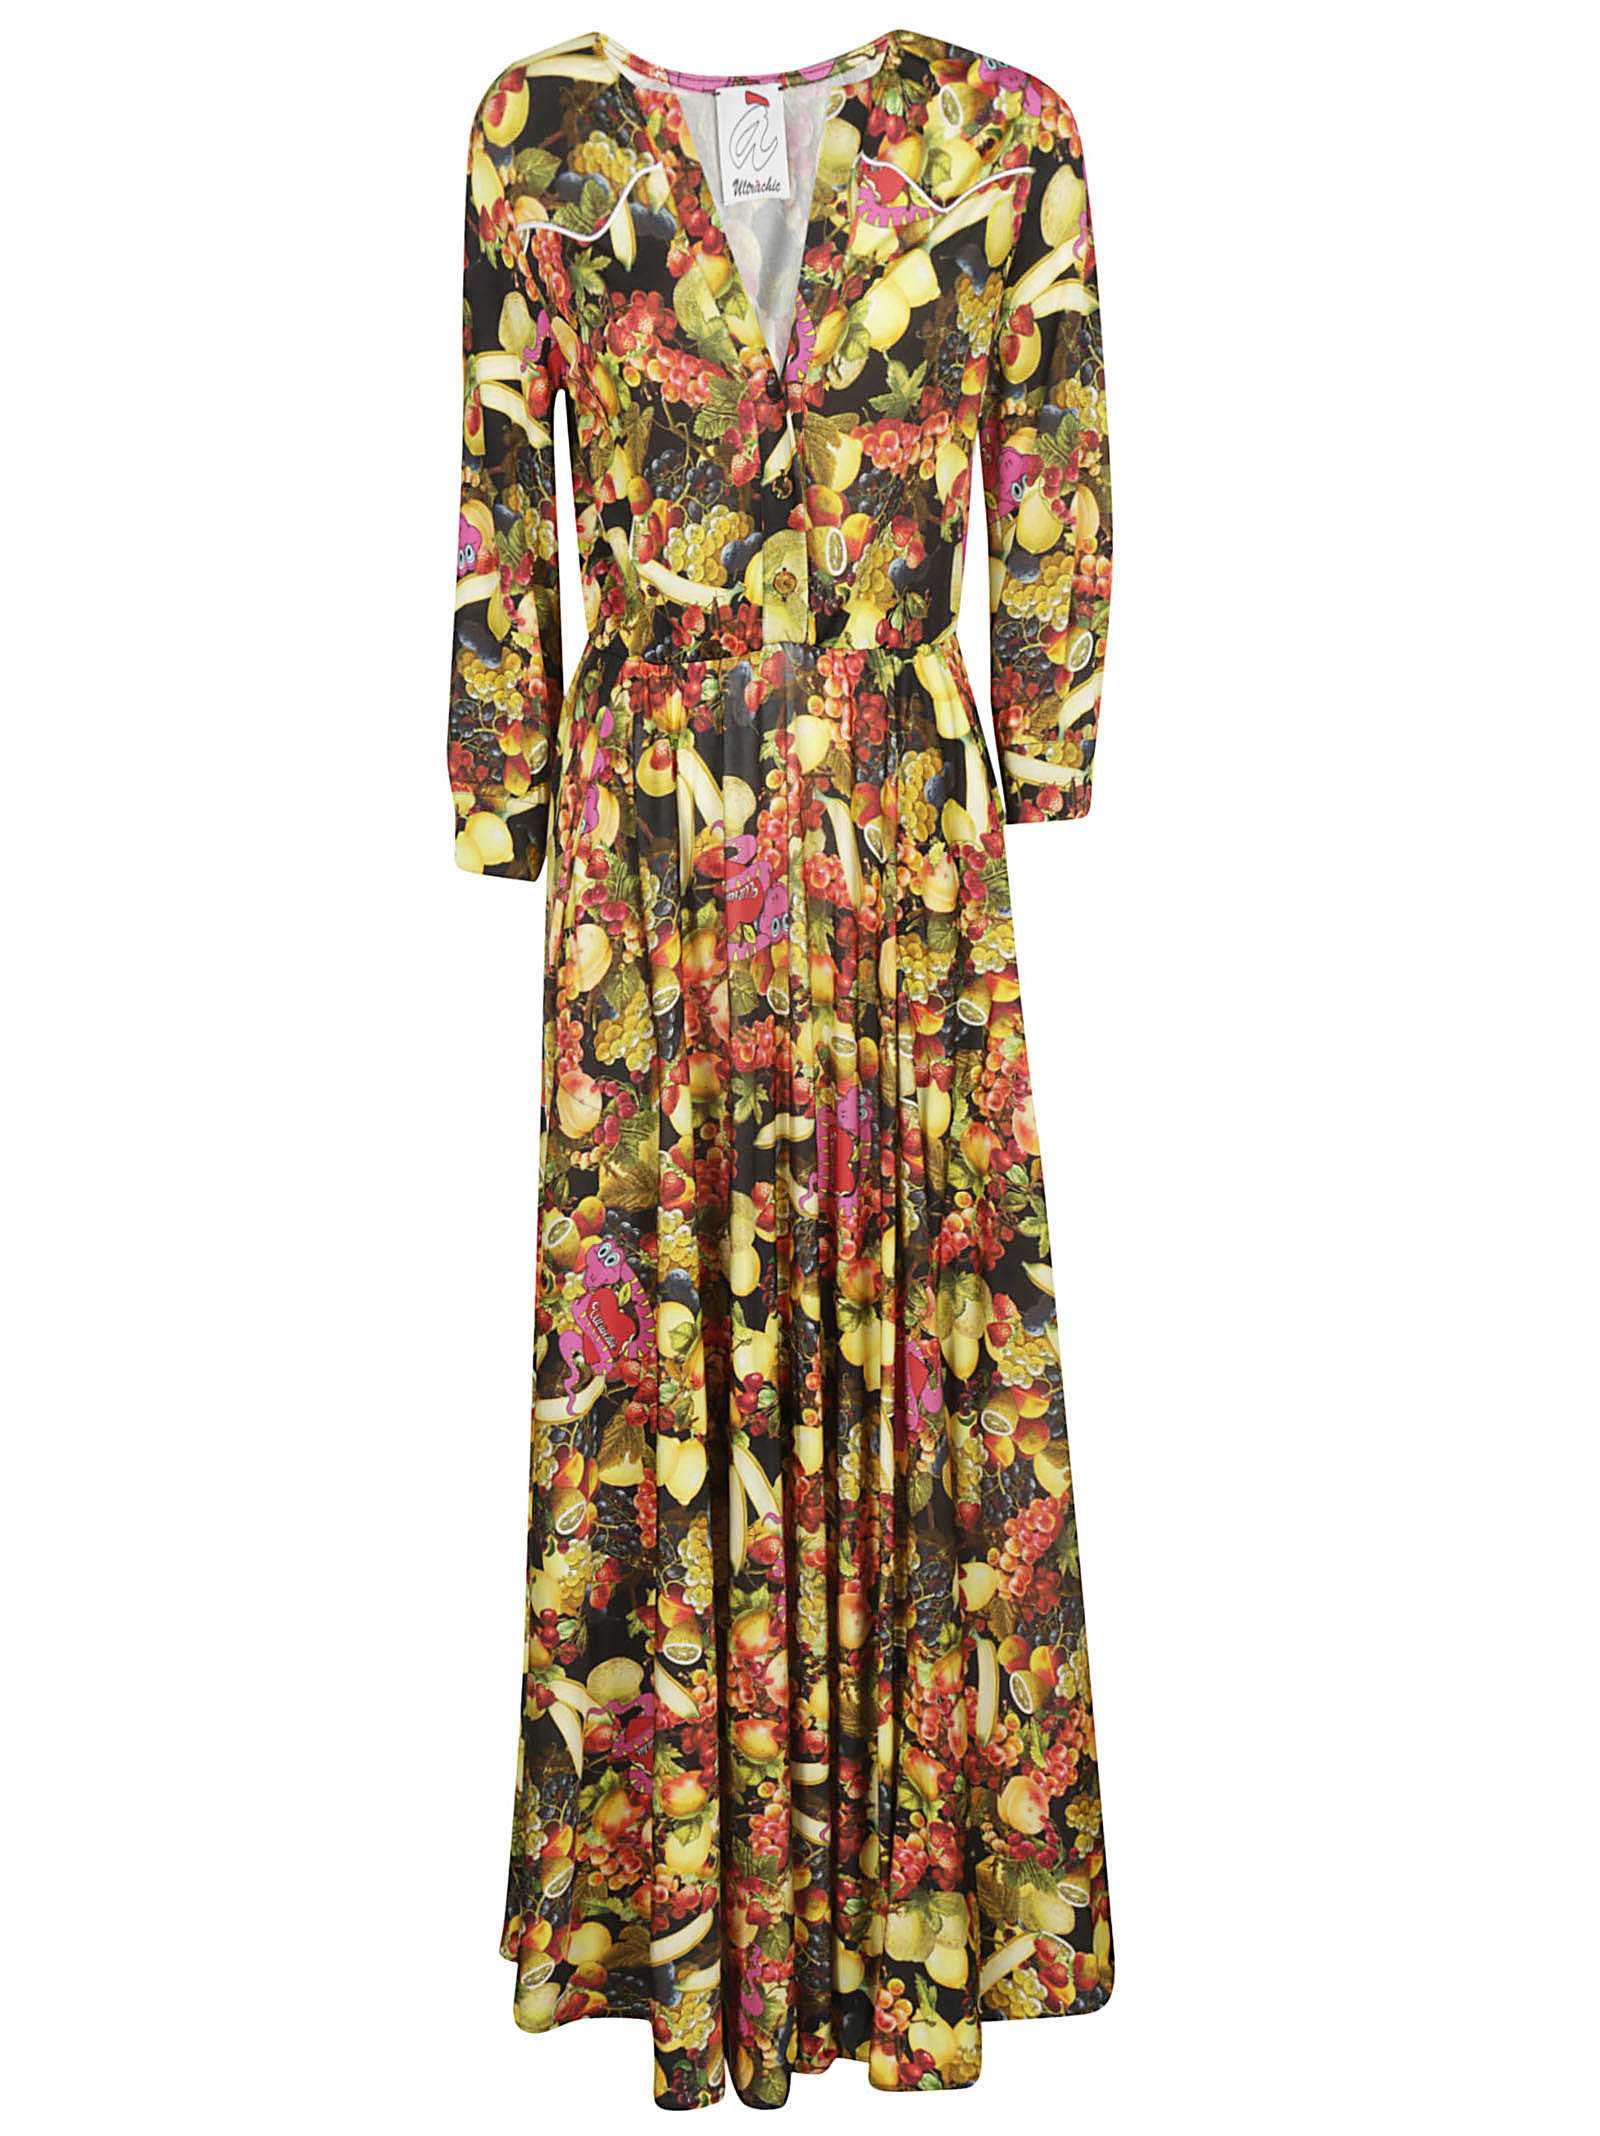 Ultrachic Fruits Printed Maxi Dress